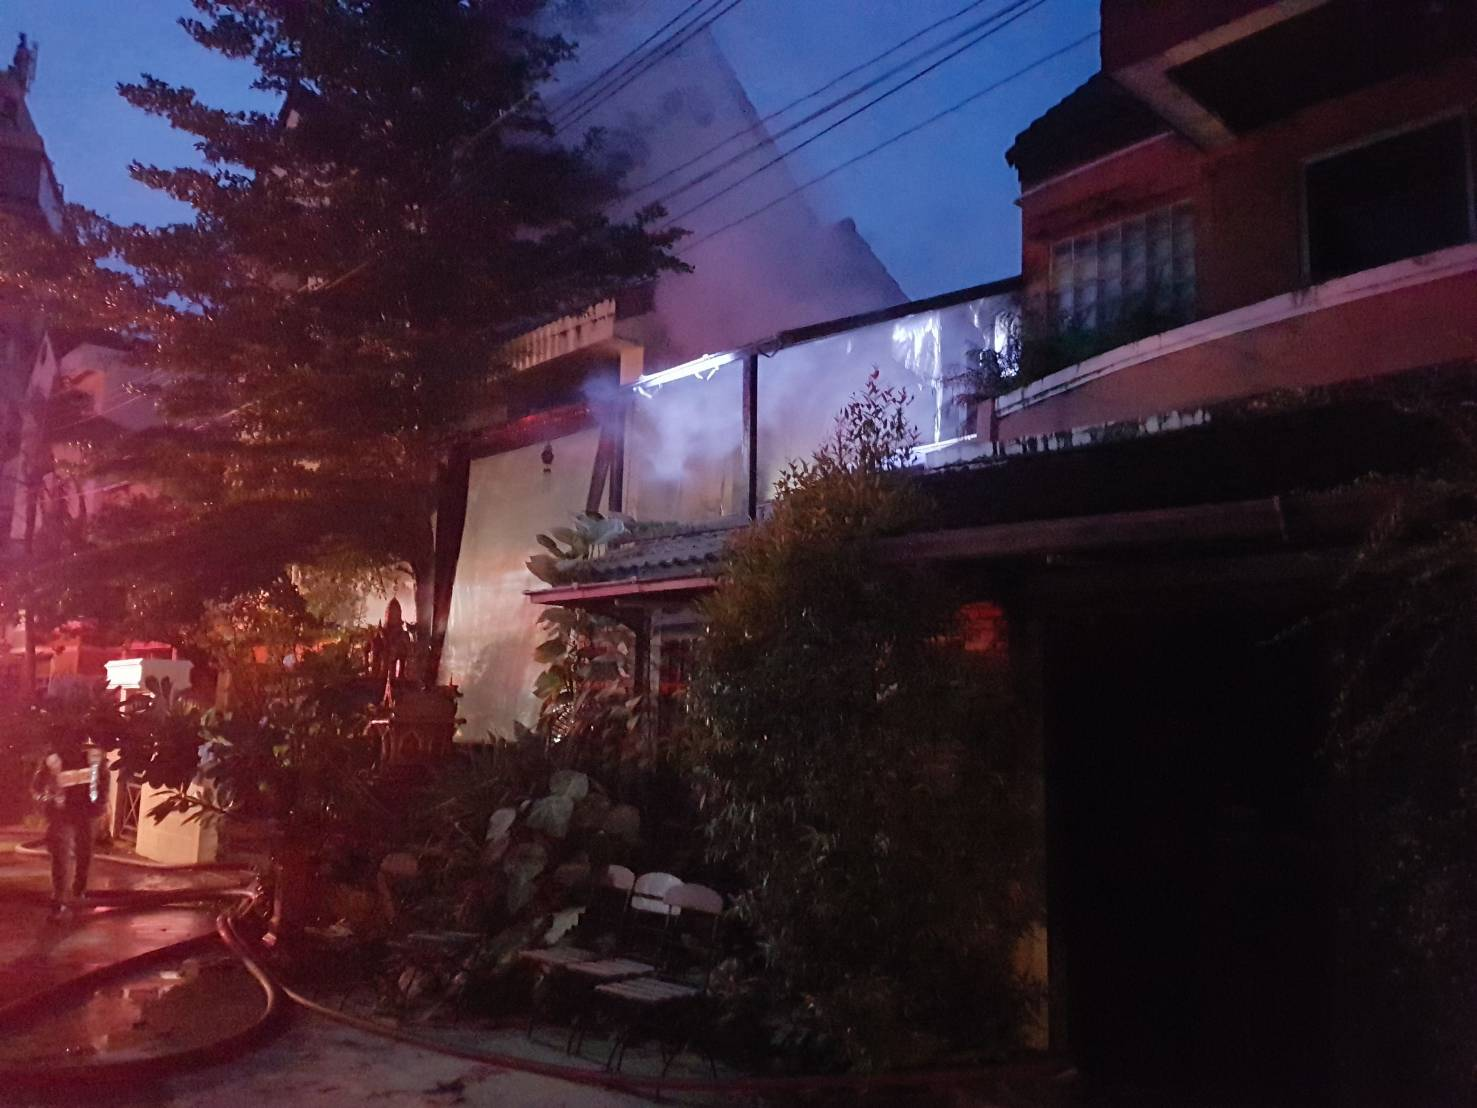 Two escape injures in Patong house fire. Woken up by cat hero. | The Thaiger